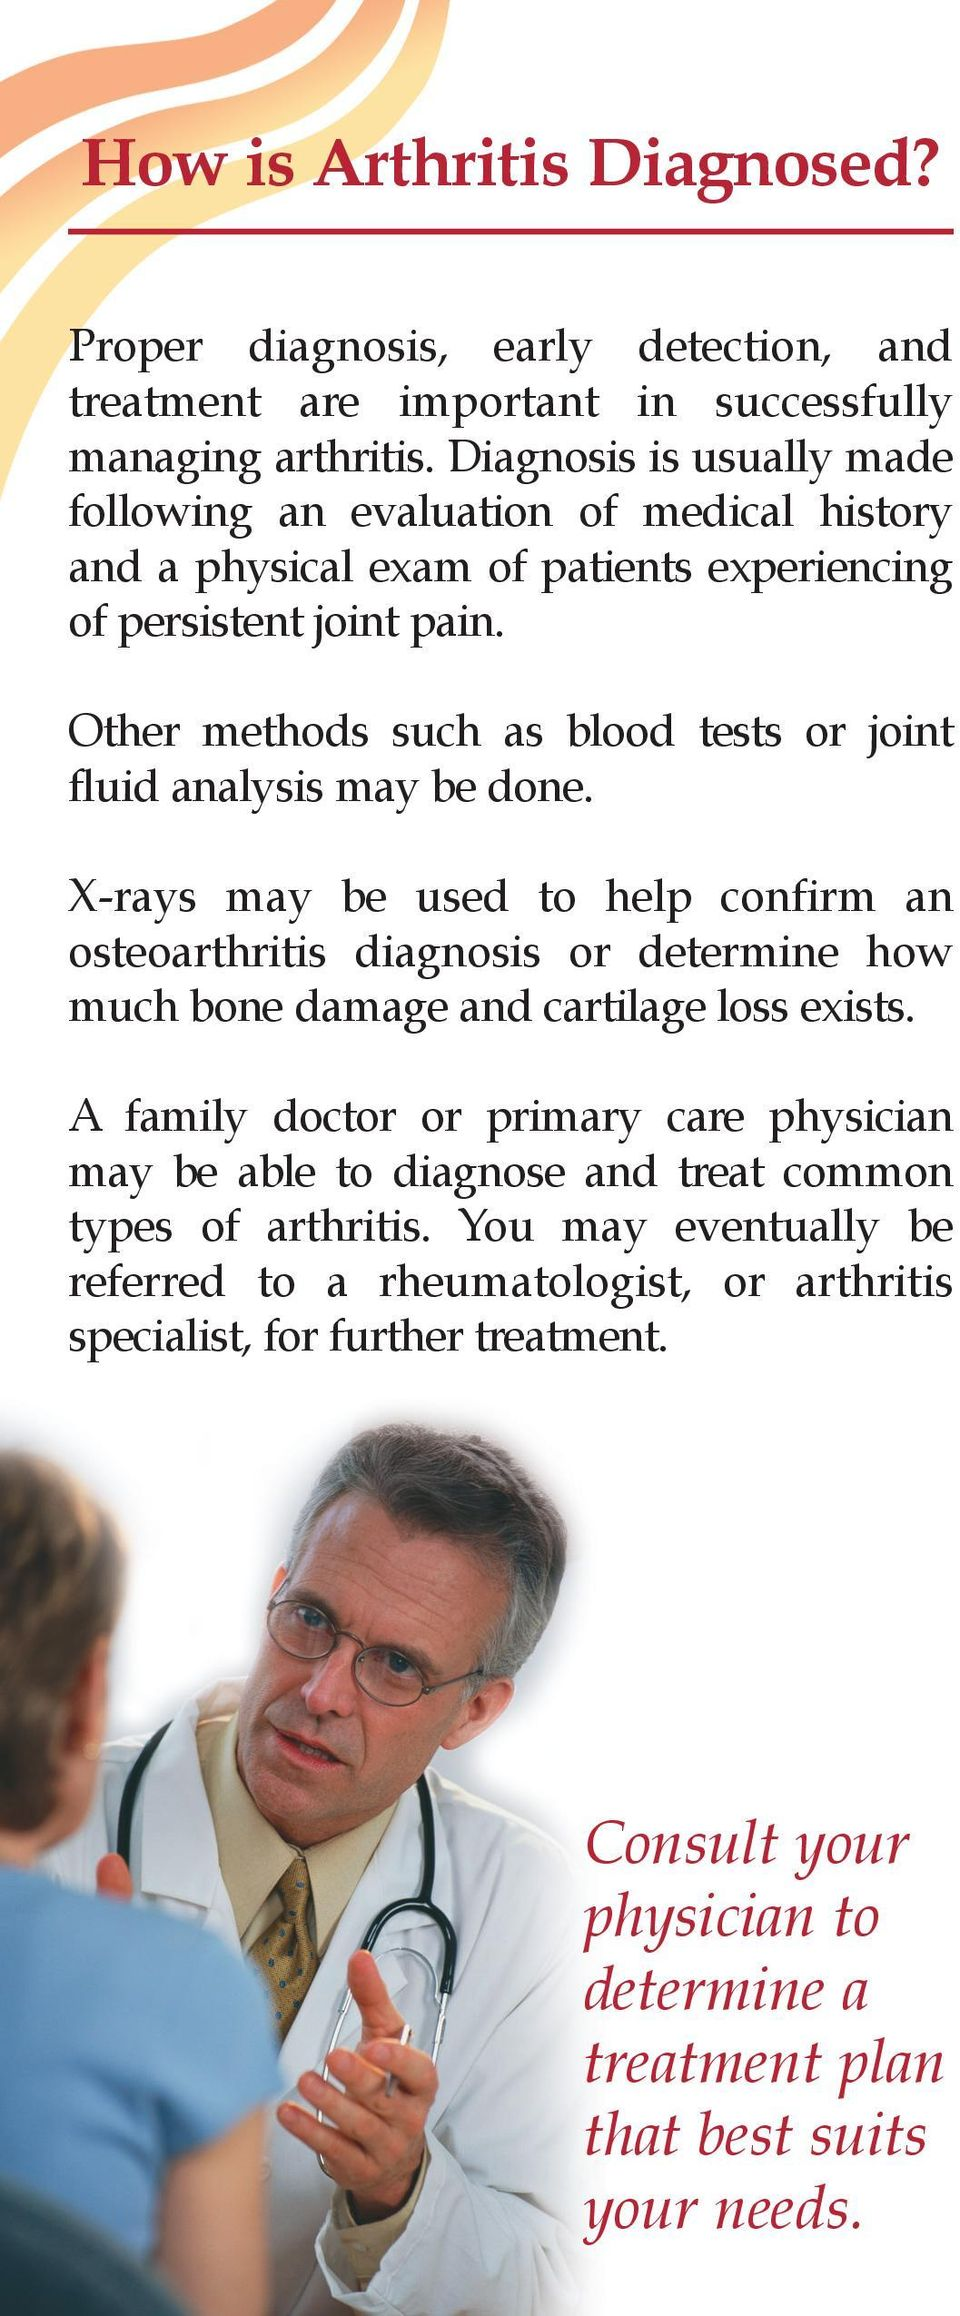 Other methods such as blood tests or joint fluid analysis may be done.